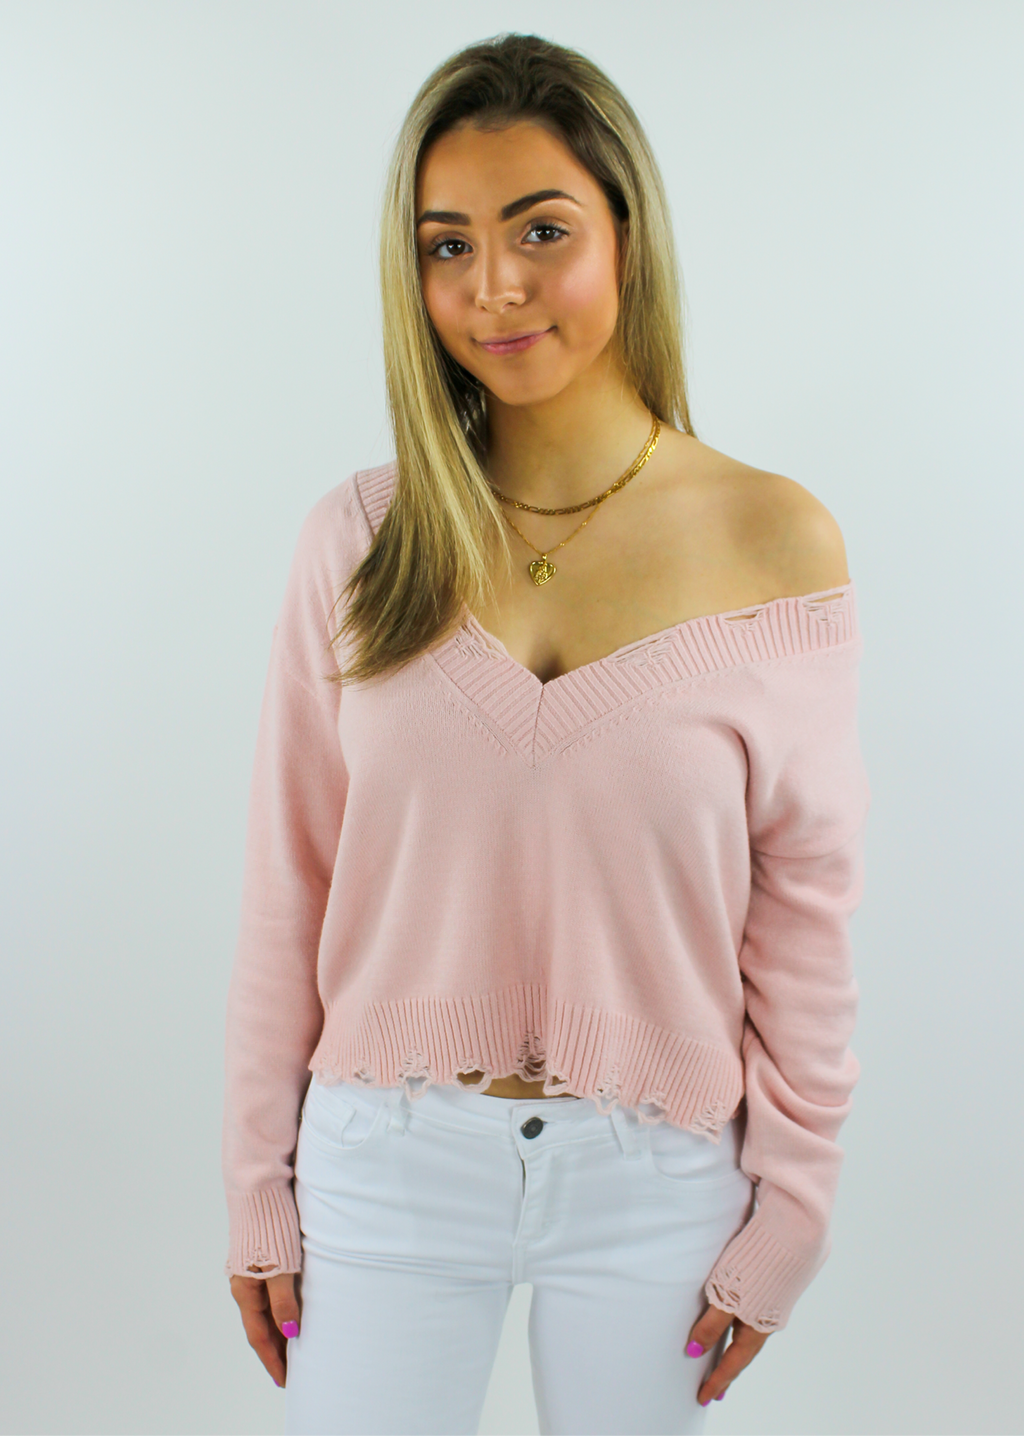 The Sweet Life Sweater ★ Peach - Rock N Rags